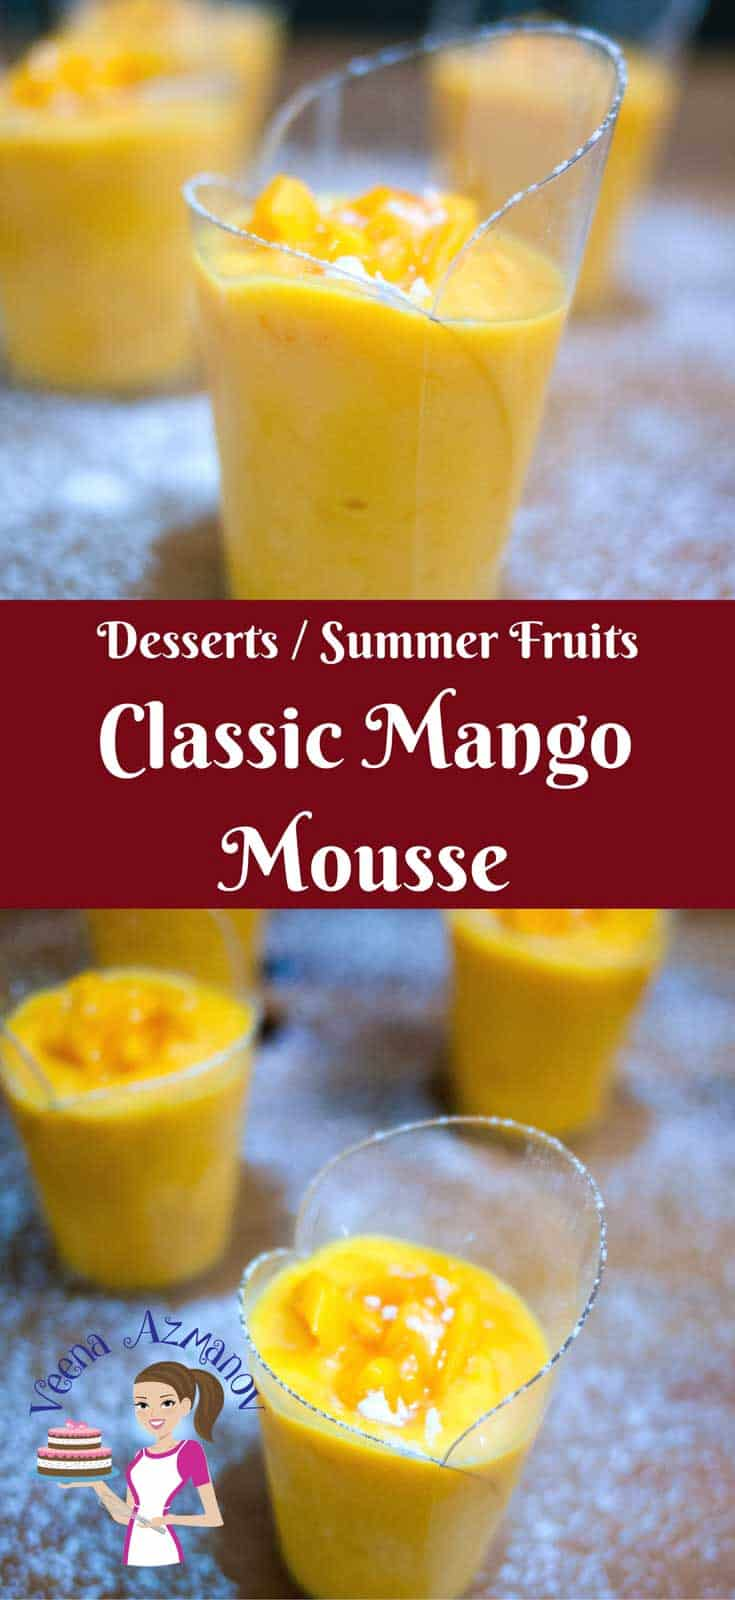 Summer brings in some exotic fruits like mangoes that are perfect for this classic mango mousse. Made with french vanilla cream as a base along with whipped cream and egg whites for that ultimate light and airy texture that just melts in the mouth. Via veenaazmanov.com